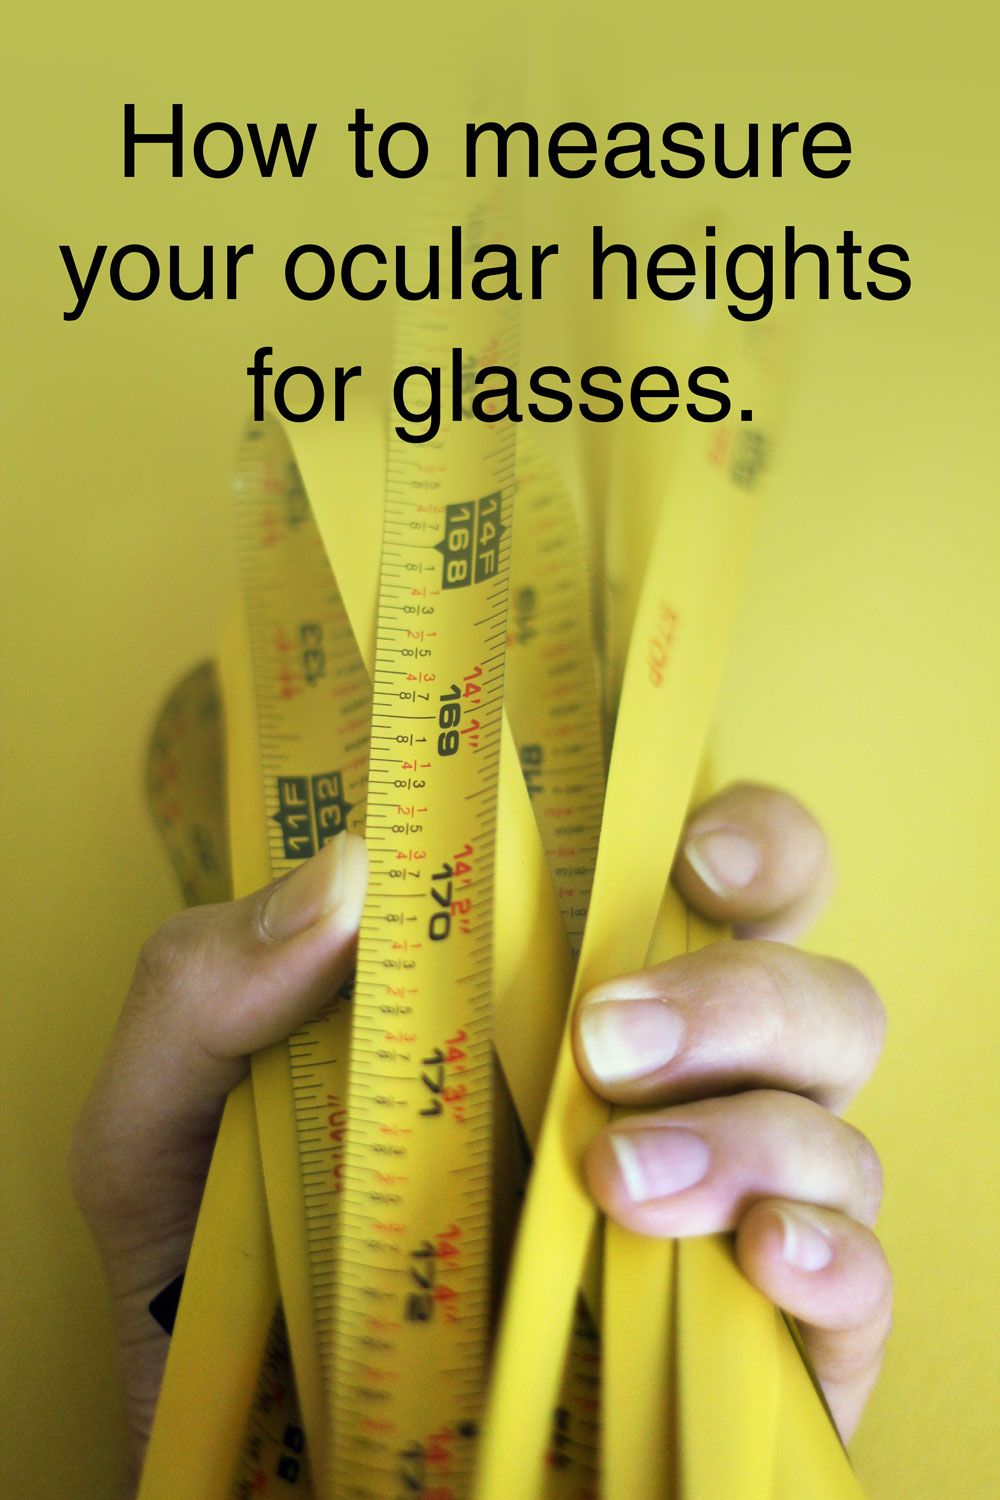 How to measure your ocular height How to measure